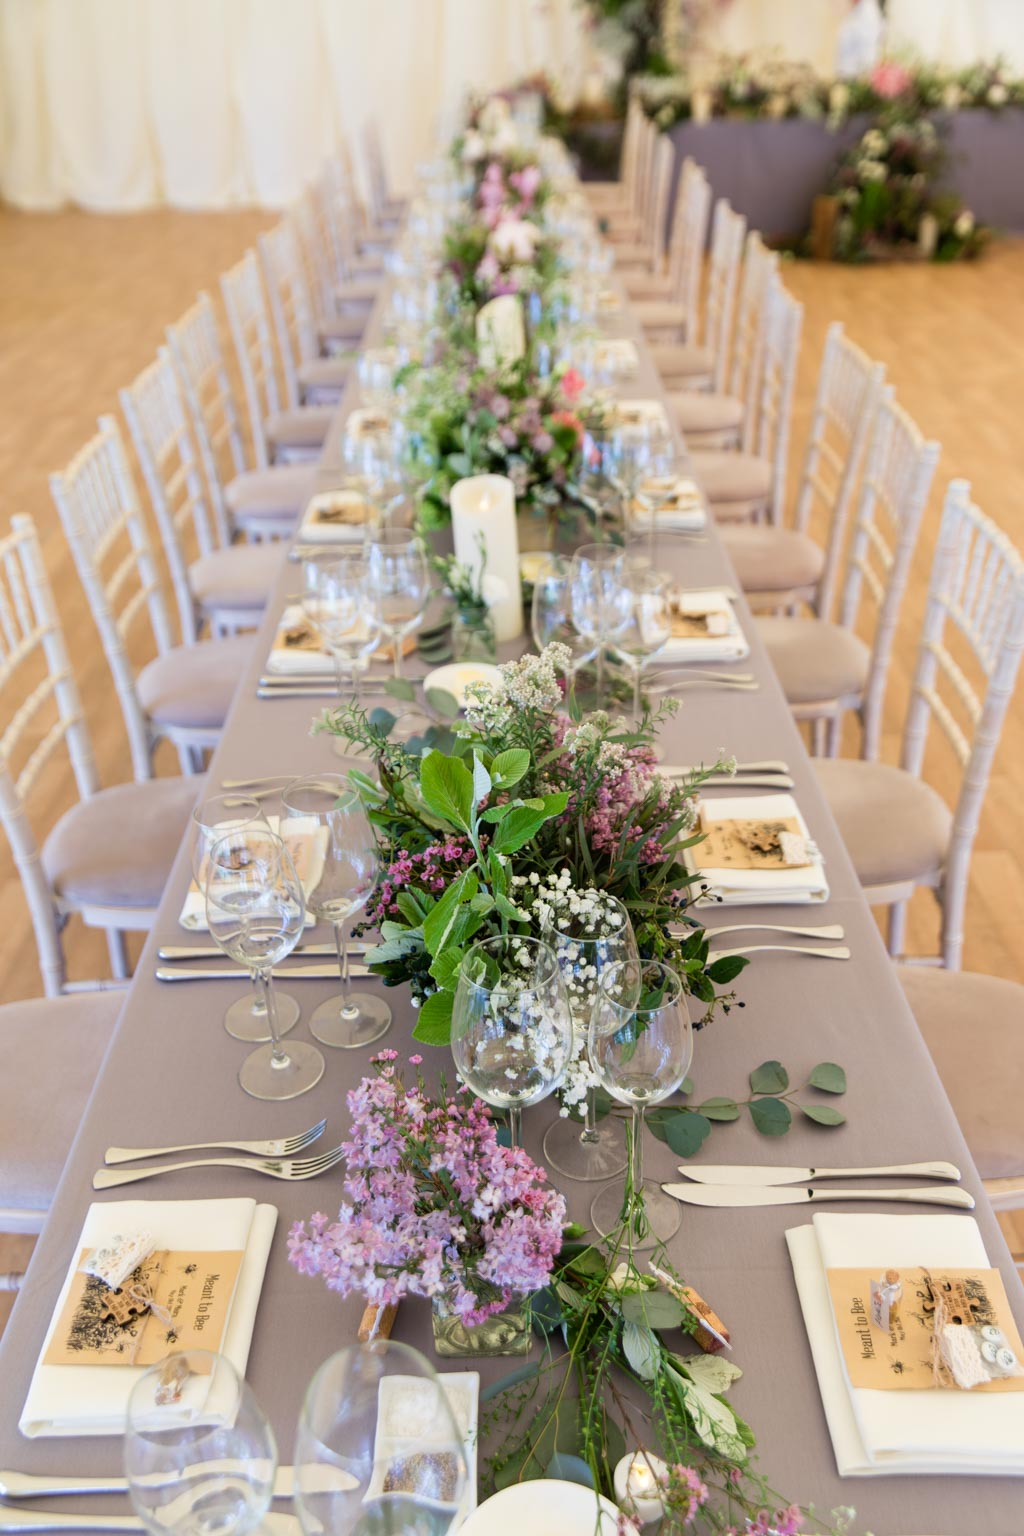 banquet style wedding tables with grey table cloths and floral arrangements